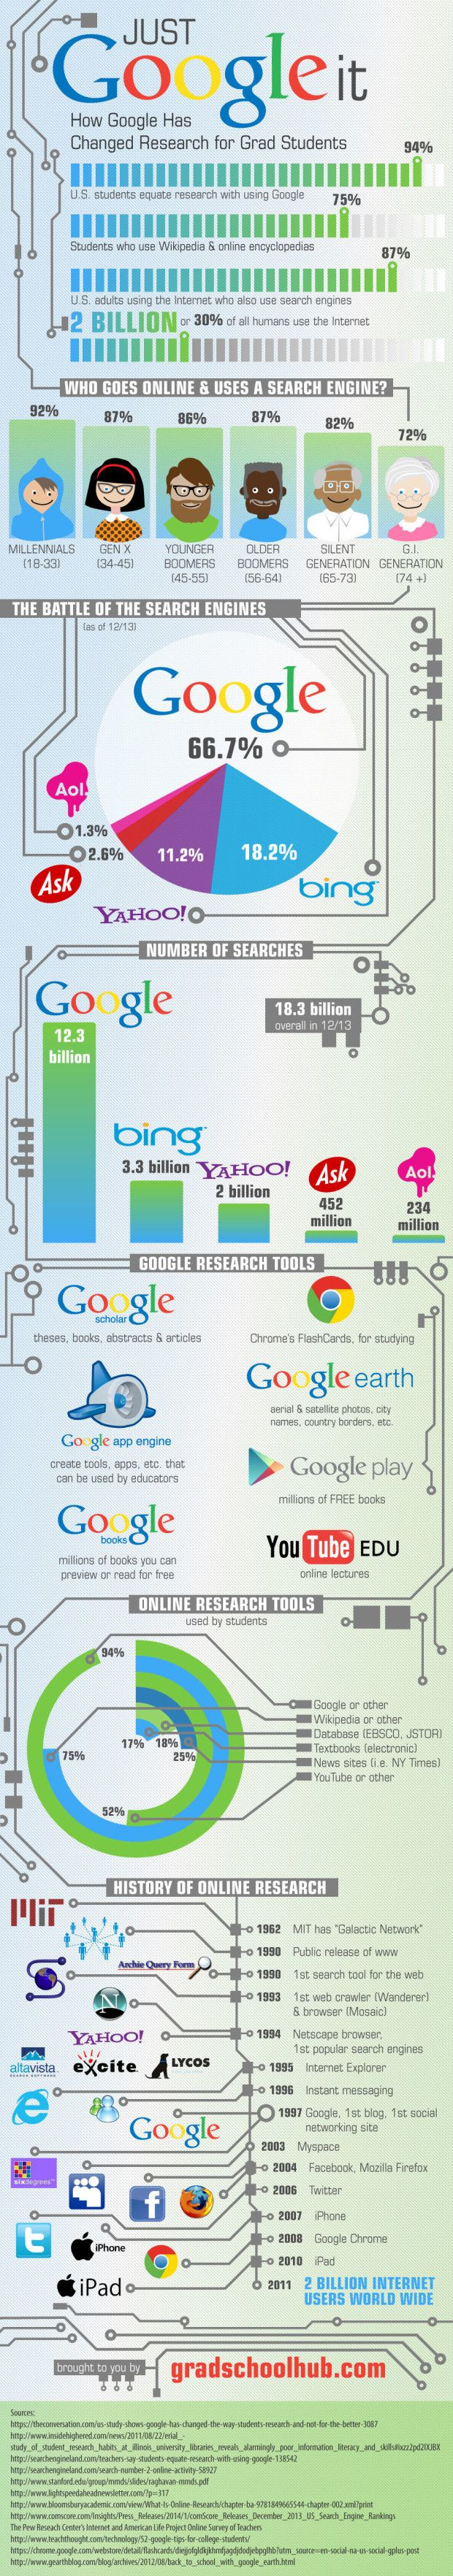 How Google Has Changed Student Research - Edudemic